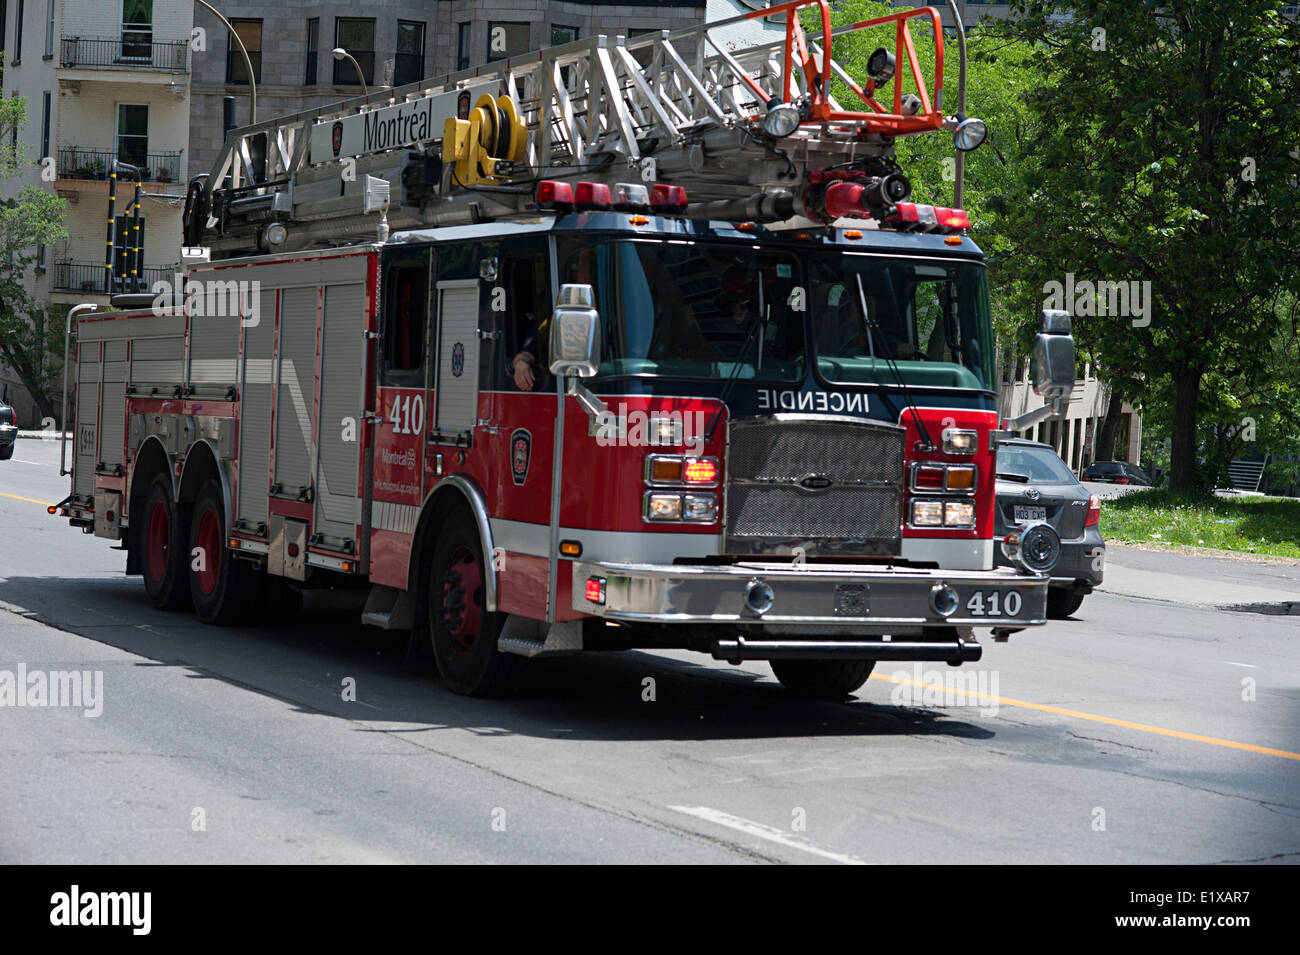 Fire engine races up a hill in Montreal, Quebec, Canada. - Stock Image